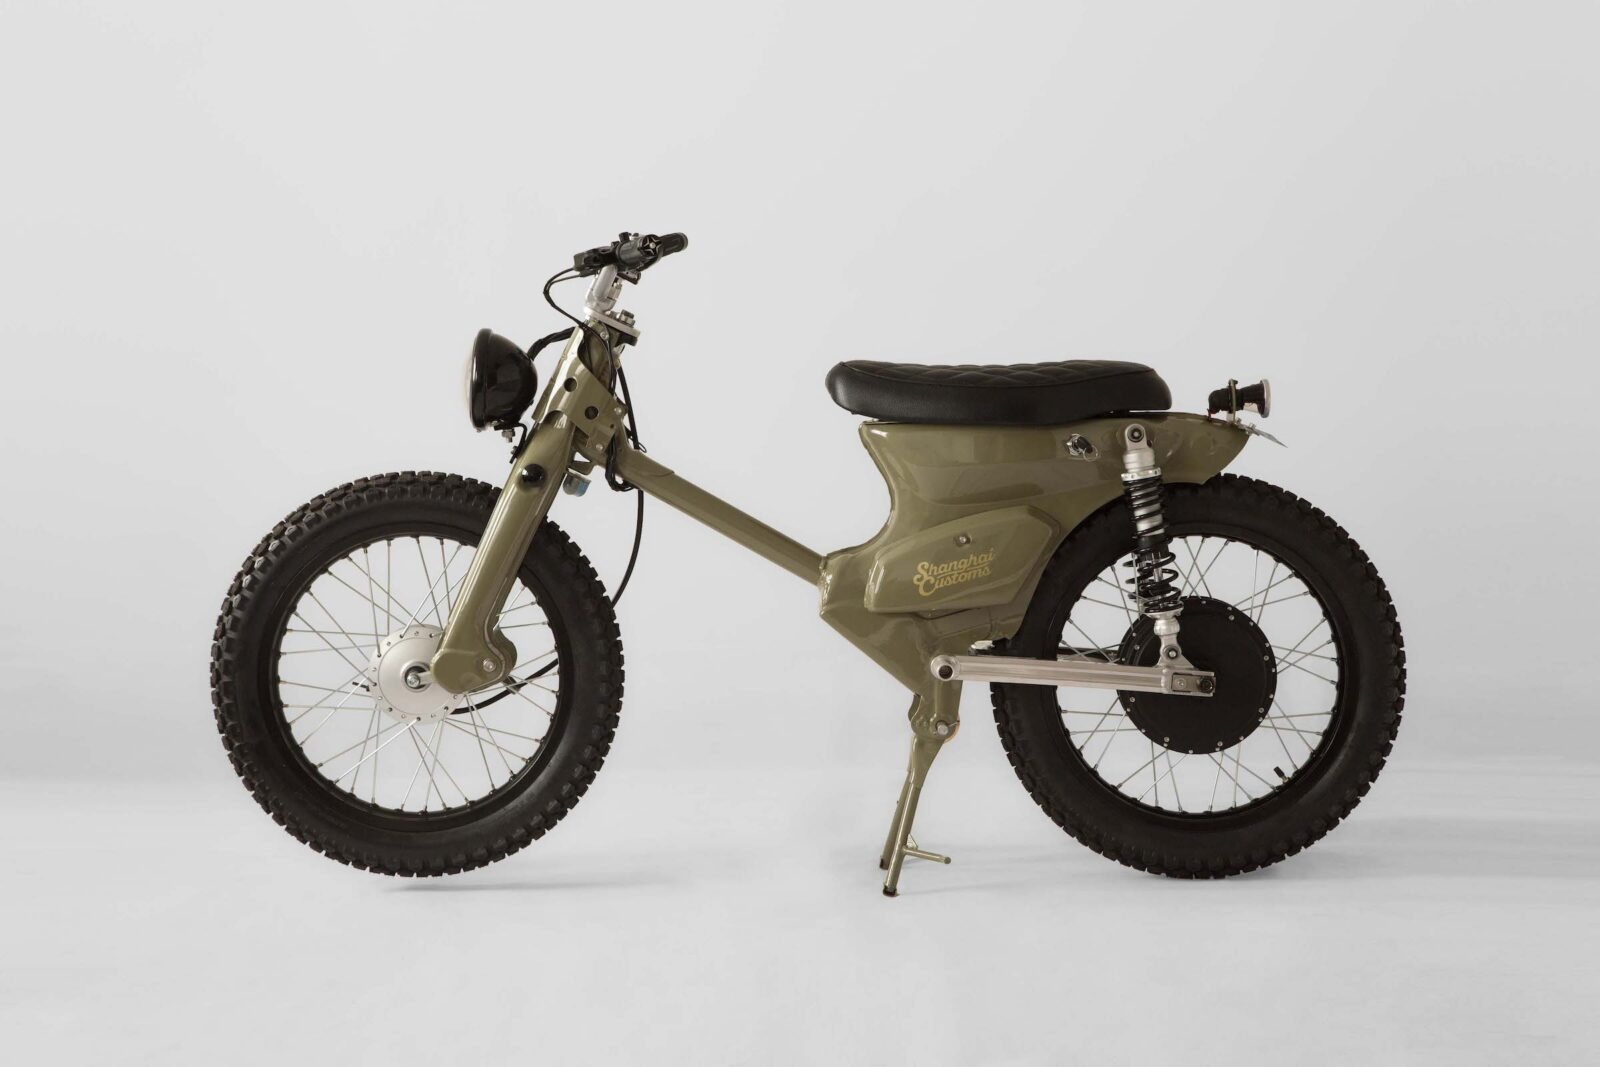 The eCub A Retro Electric Motorcycle by Shanghai Customs 1600x1067 - The eCub 2 - A Retro Electric Motorcycle by Shanghai Customs